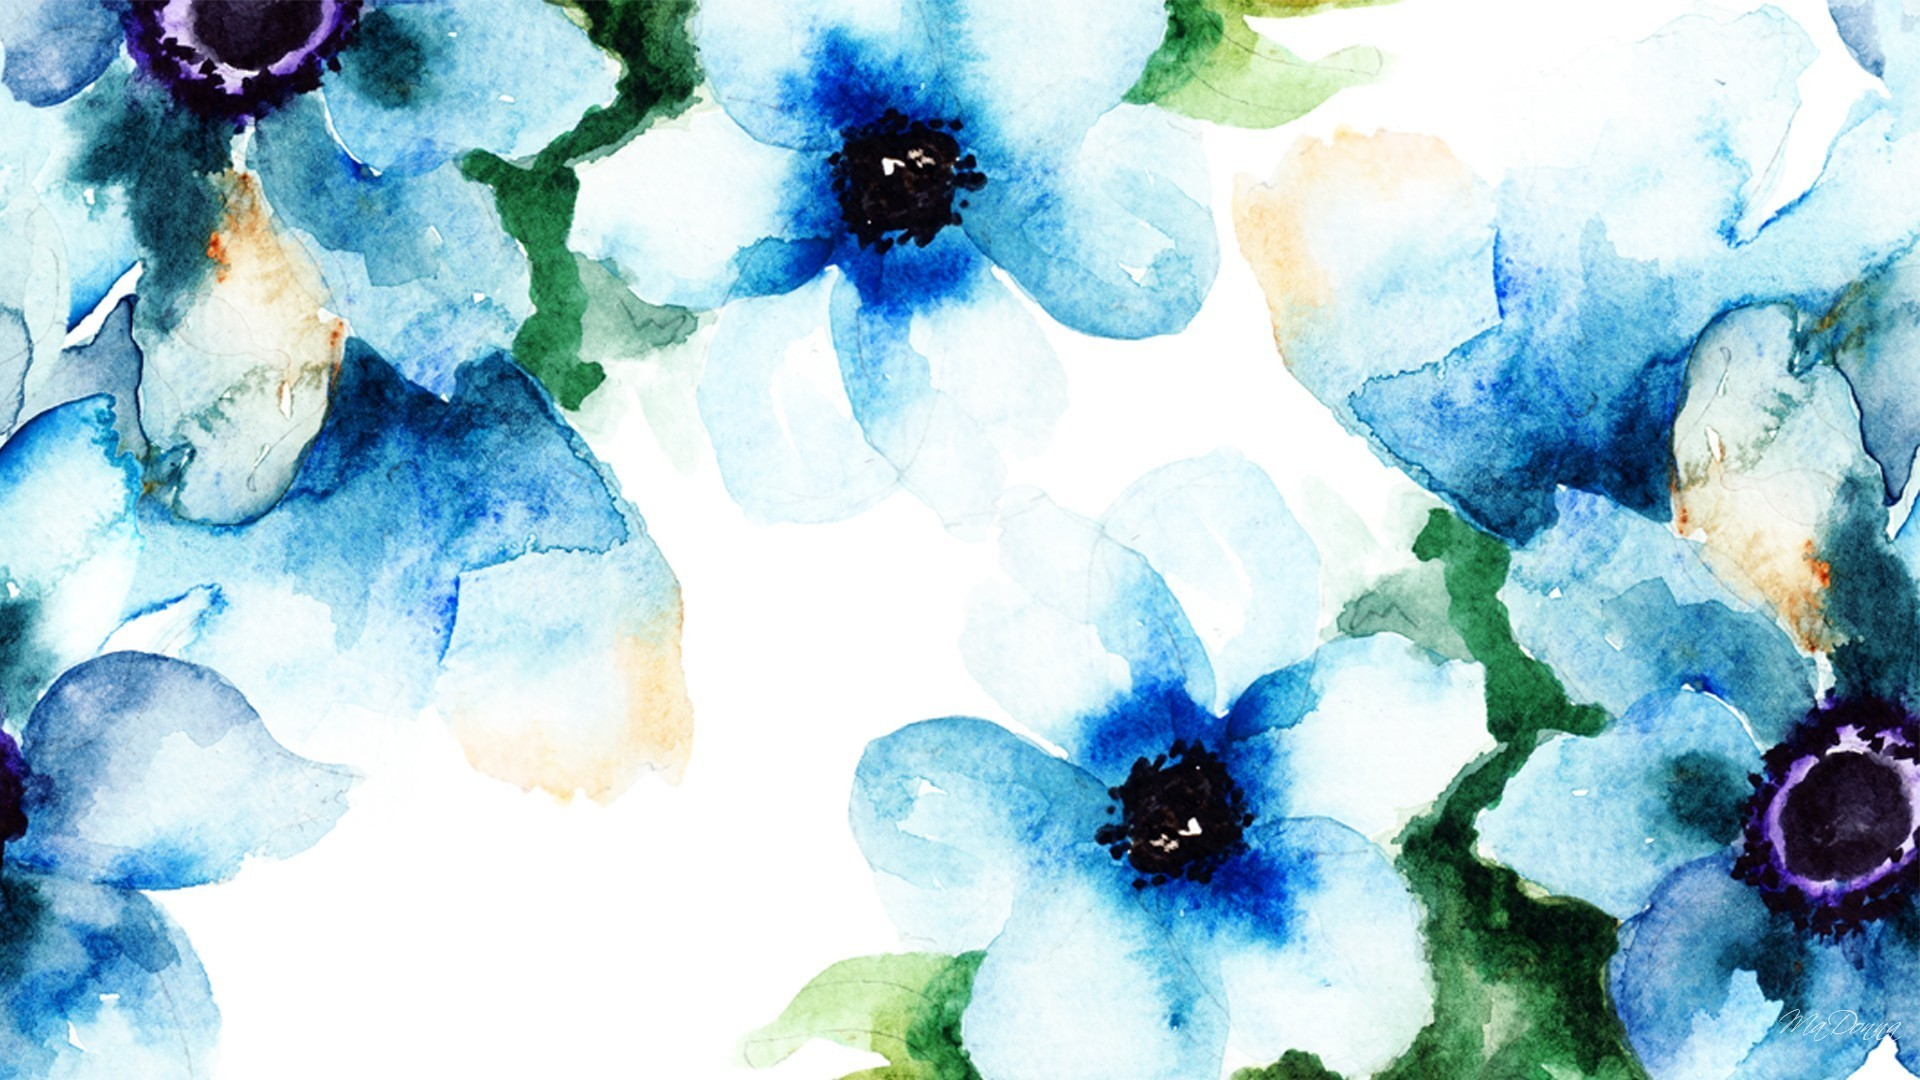 30 Free Beautiful Watercolor Wallpapers That Should Be on Your Desktop – 30    Wallpapers   Pinterest   Watercolor wallpaper, Wallpaper and Watercolor